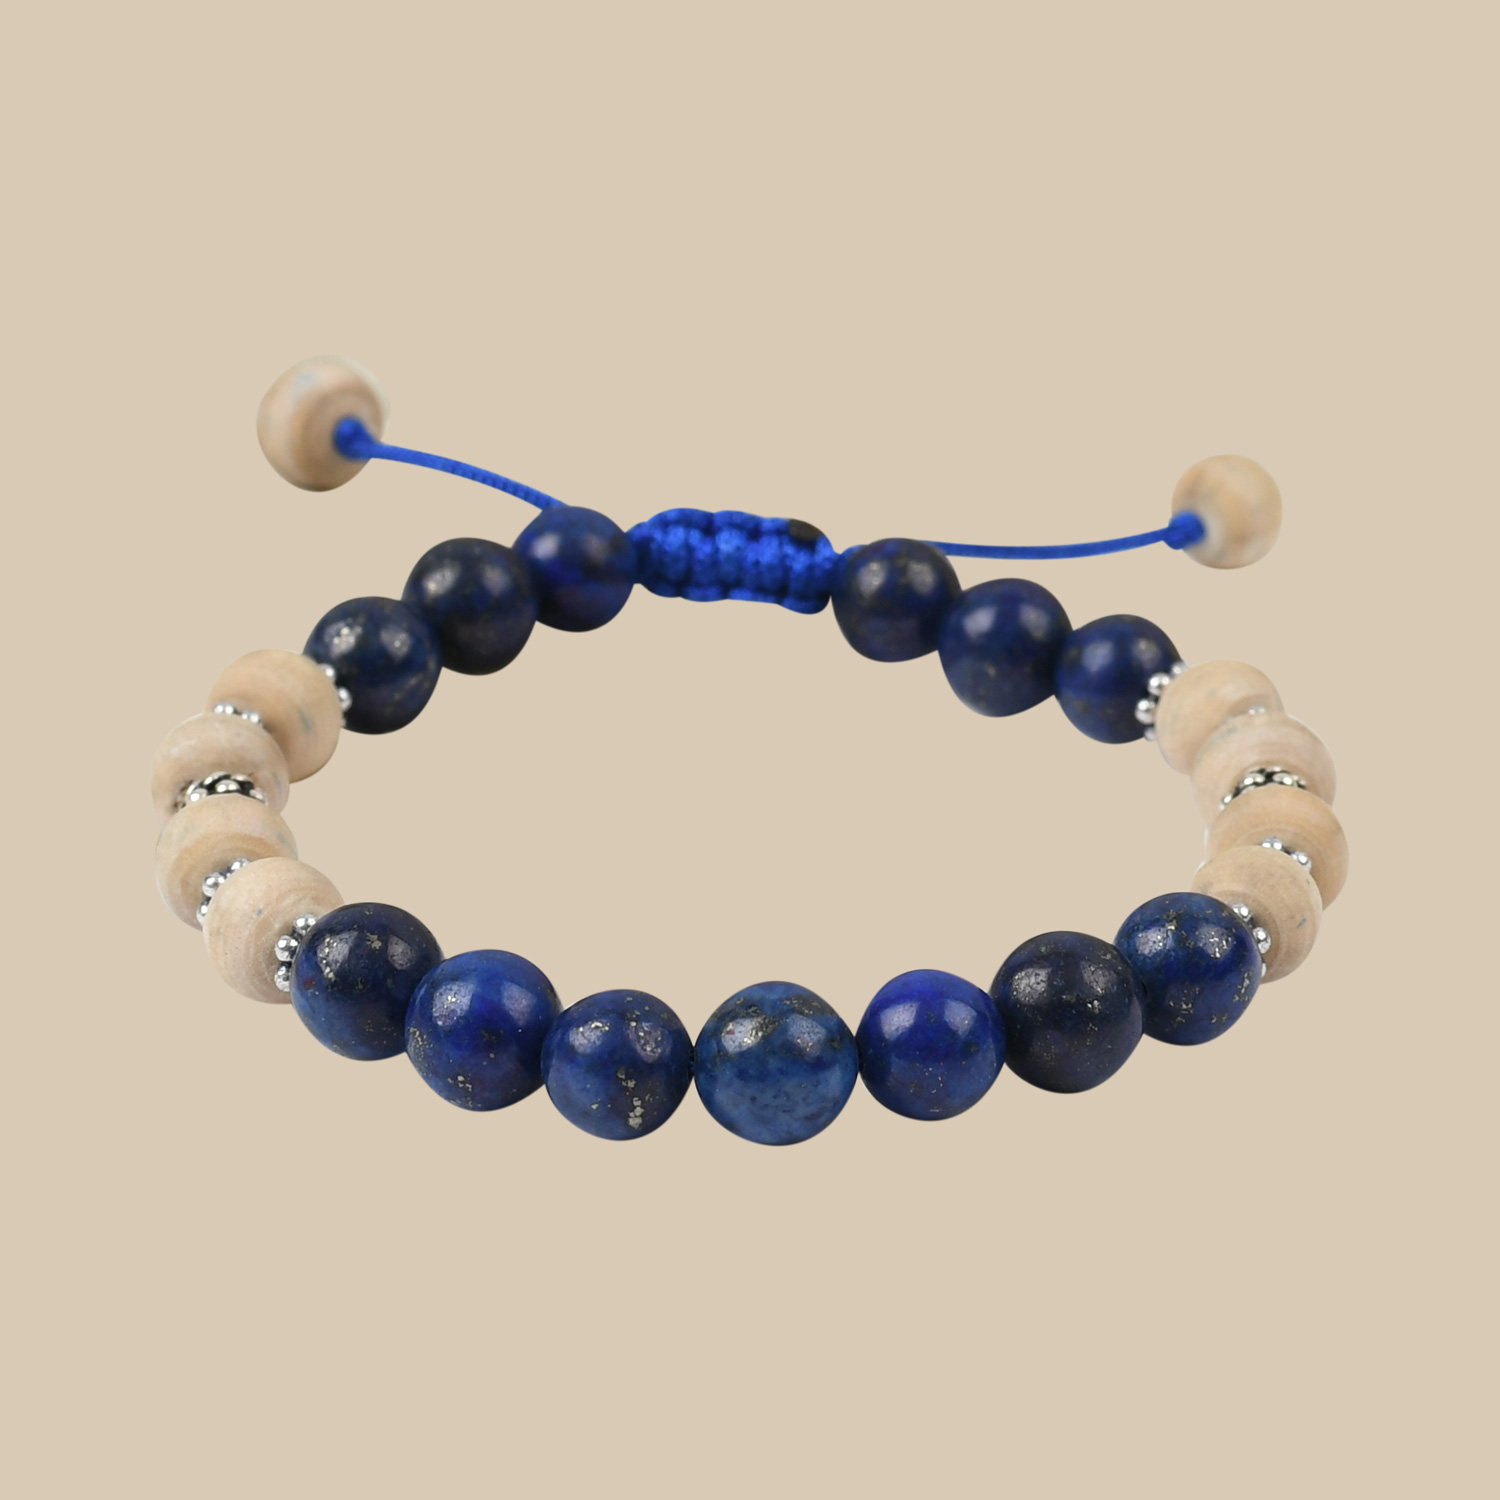 wood eye mala wooden beautiful luck lucky for bead bracelets men evil bracelet blue agarwood talisman mens jewelry good beads unisex